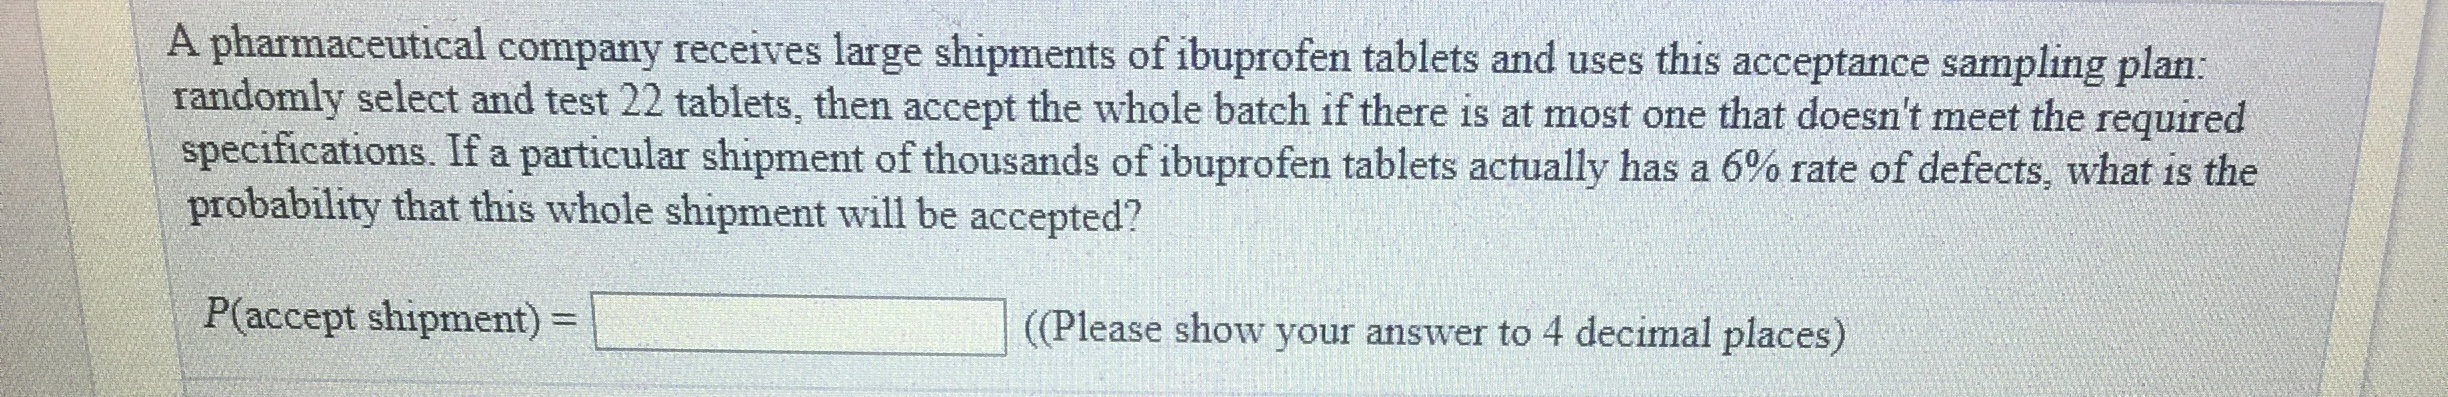 A pharmaceutical company receives large shipments of ibuprofen tablets and uses this acceptance sampling plan randomly select and test 22 tablets, then accept the whole batch if there is at most one that doesn't meet the required specifications. If a particular shipment of thousands of ibuprofen tablets actually has a 6% rate of defects, what is the probability that this whole shipment will be accepted? P(accept shipment)(Please show your answer to 4 decimal places)